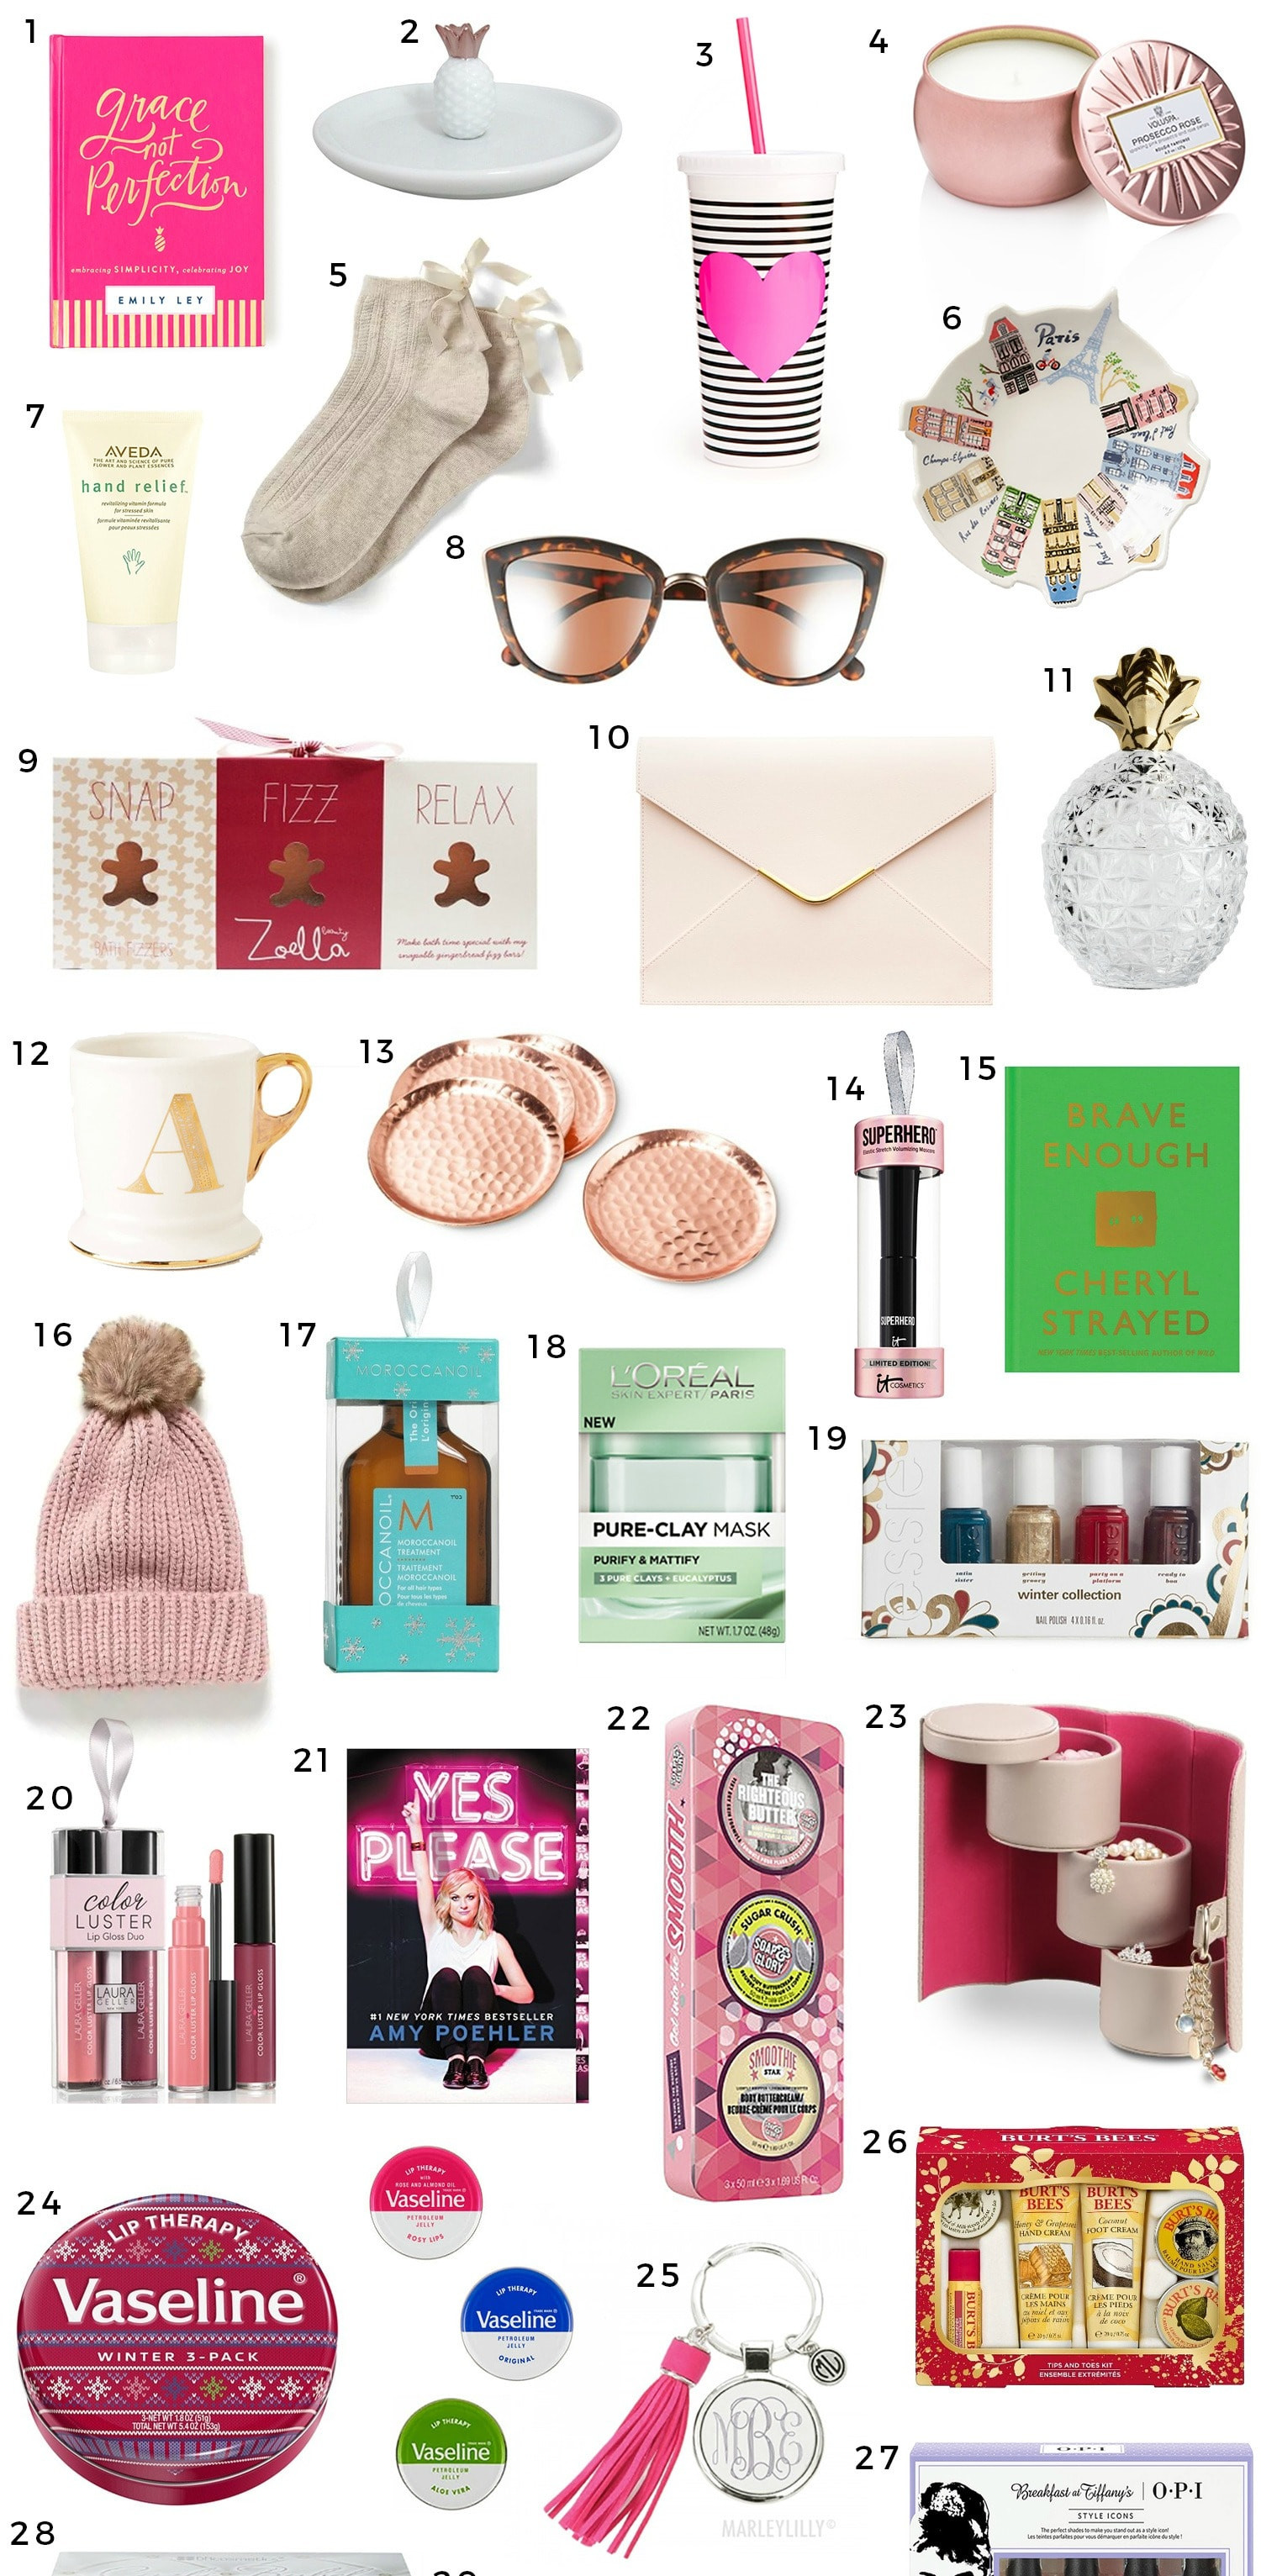 Best ideas about Gift Ideas Under $15 . Save or Pin The Best Christmas Gift Ideas for Women Under $15 Now.